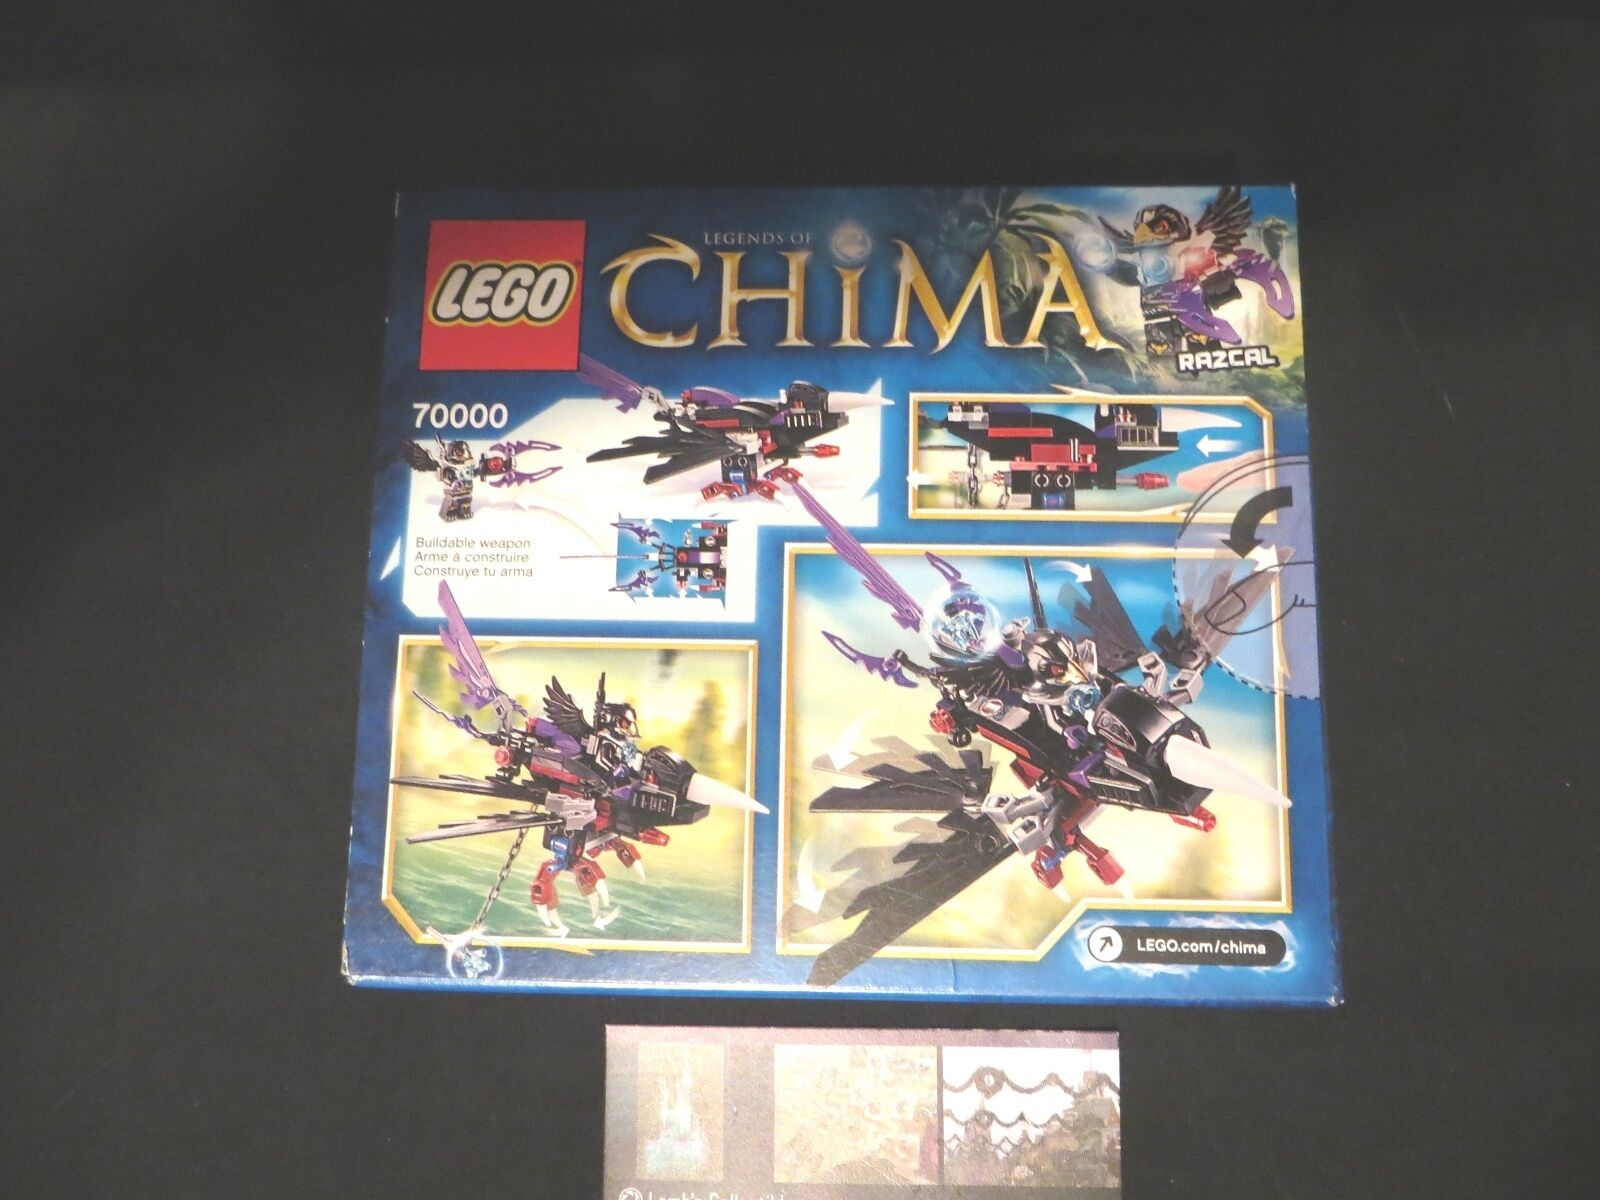 from 2013 LEGO Legends of Chima 70000 Razcal/'s Glider